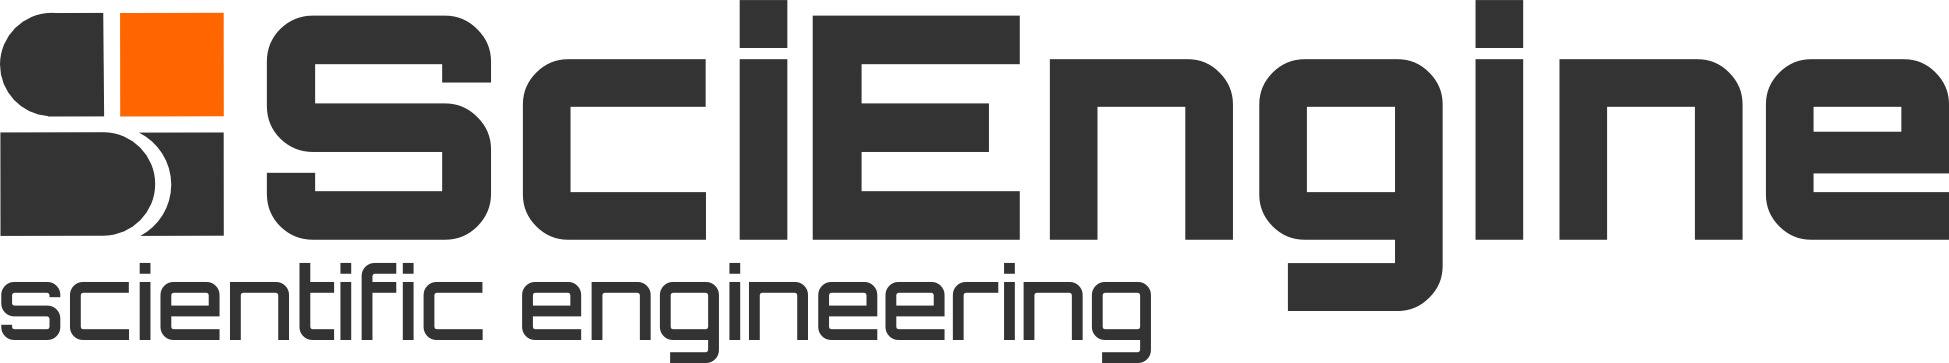 SciEngine